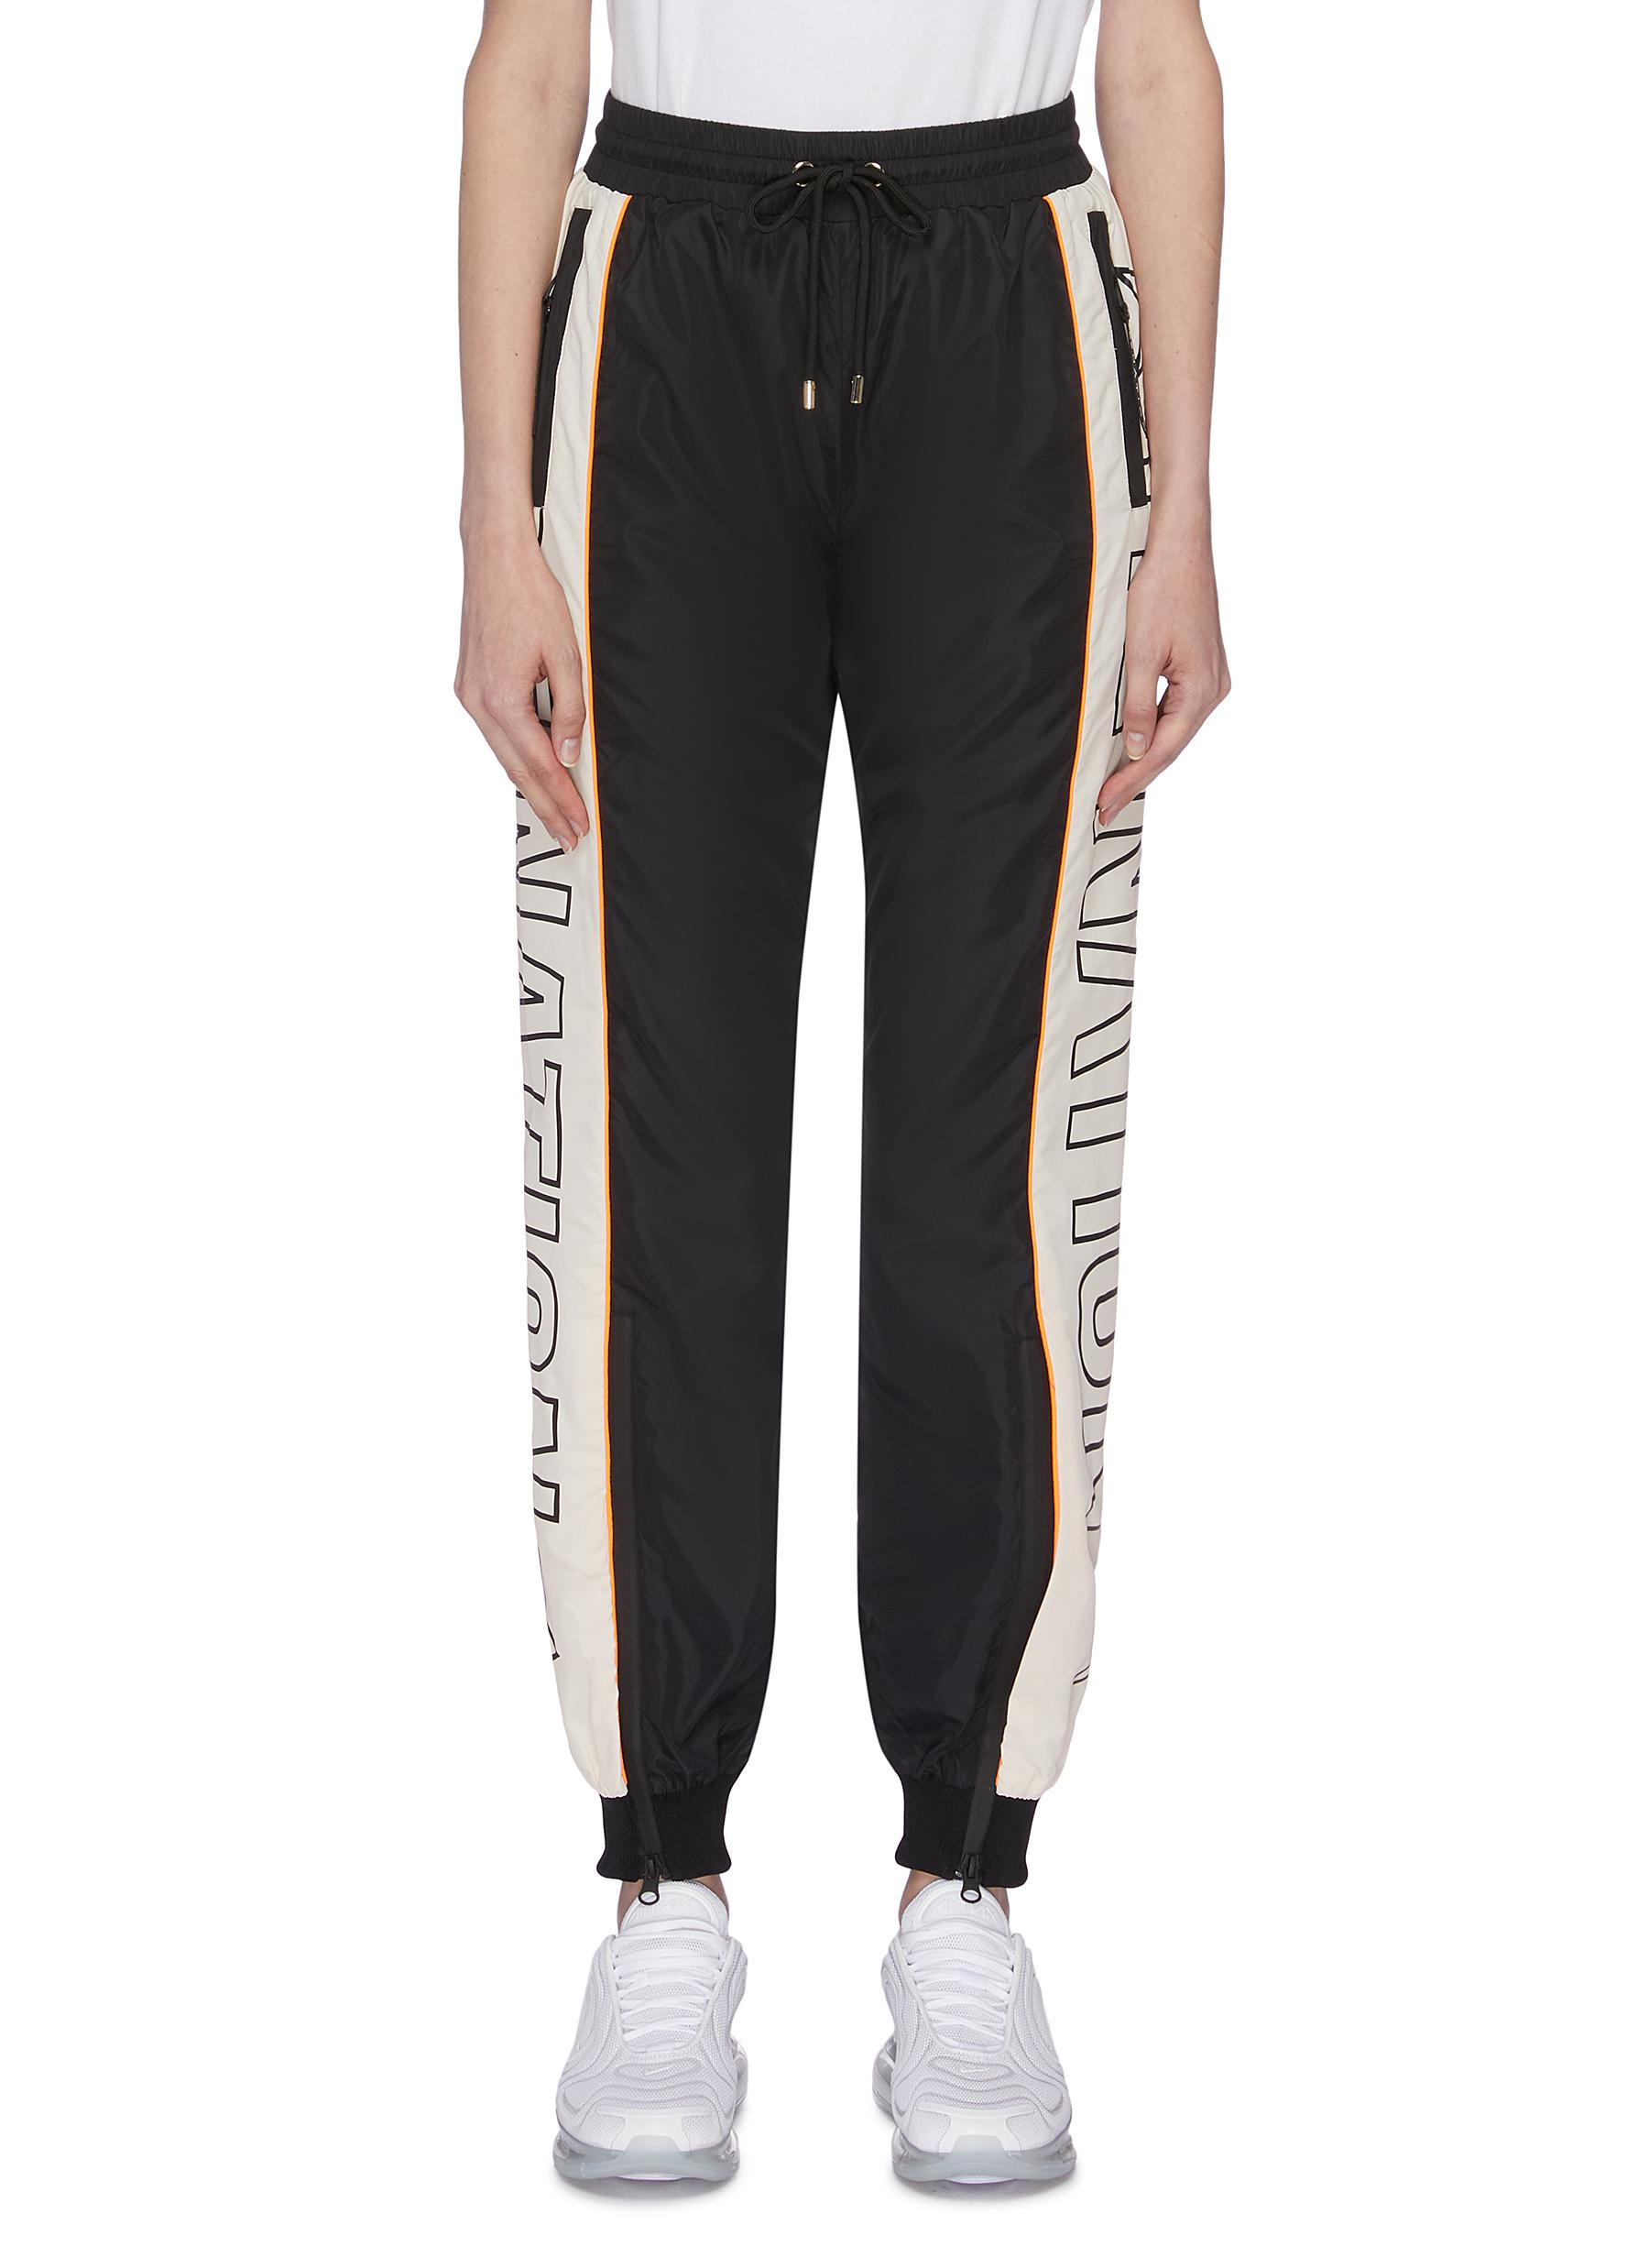 Elements logo outseam track pants by P.E Nation